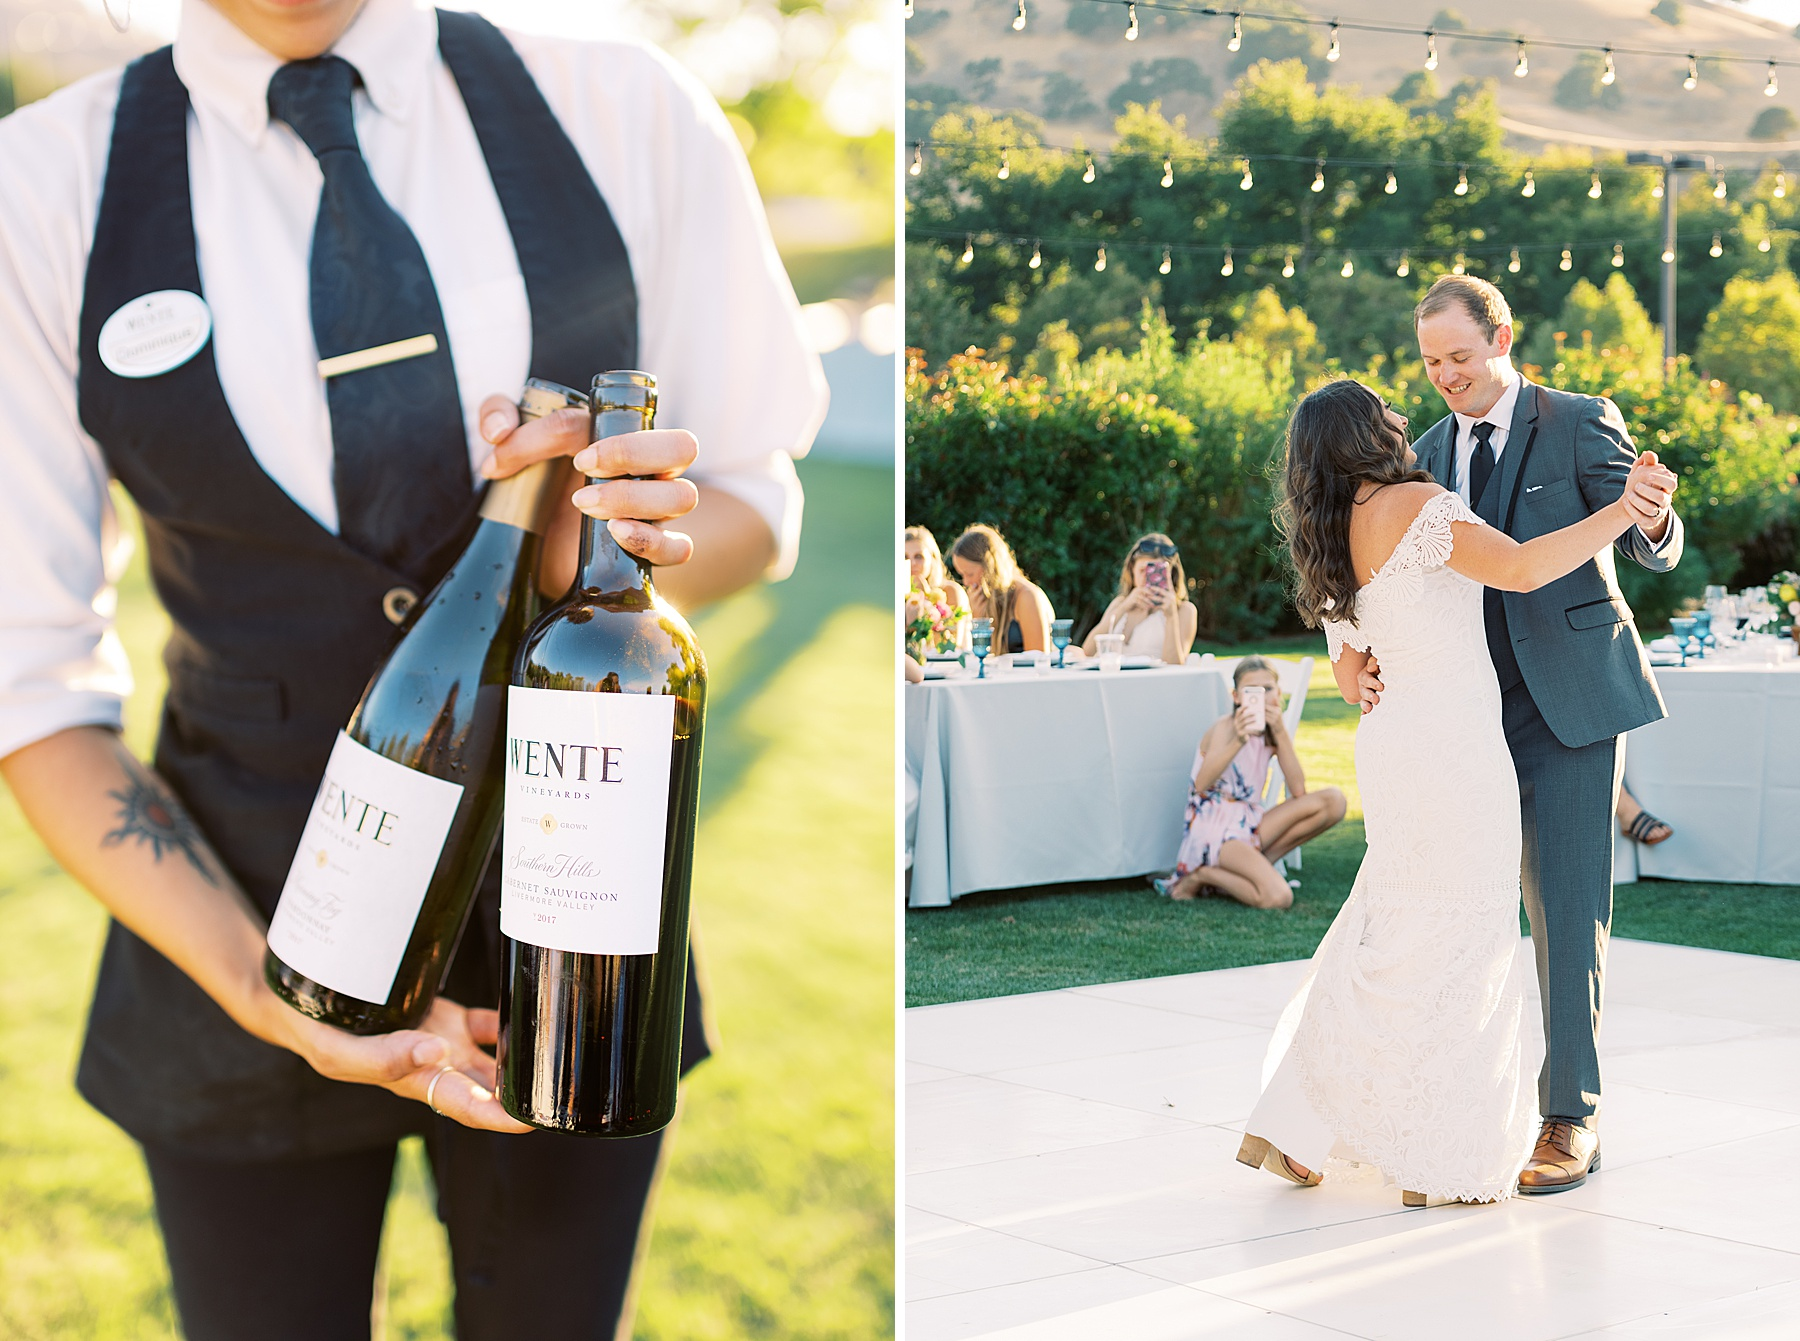 Wente Wedding with A Tropical Color Palette - Ashley & Mike - Featured on Inspired by This - Ashley Baumgartner_0013.jpg